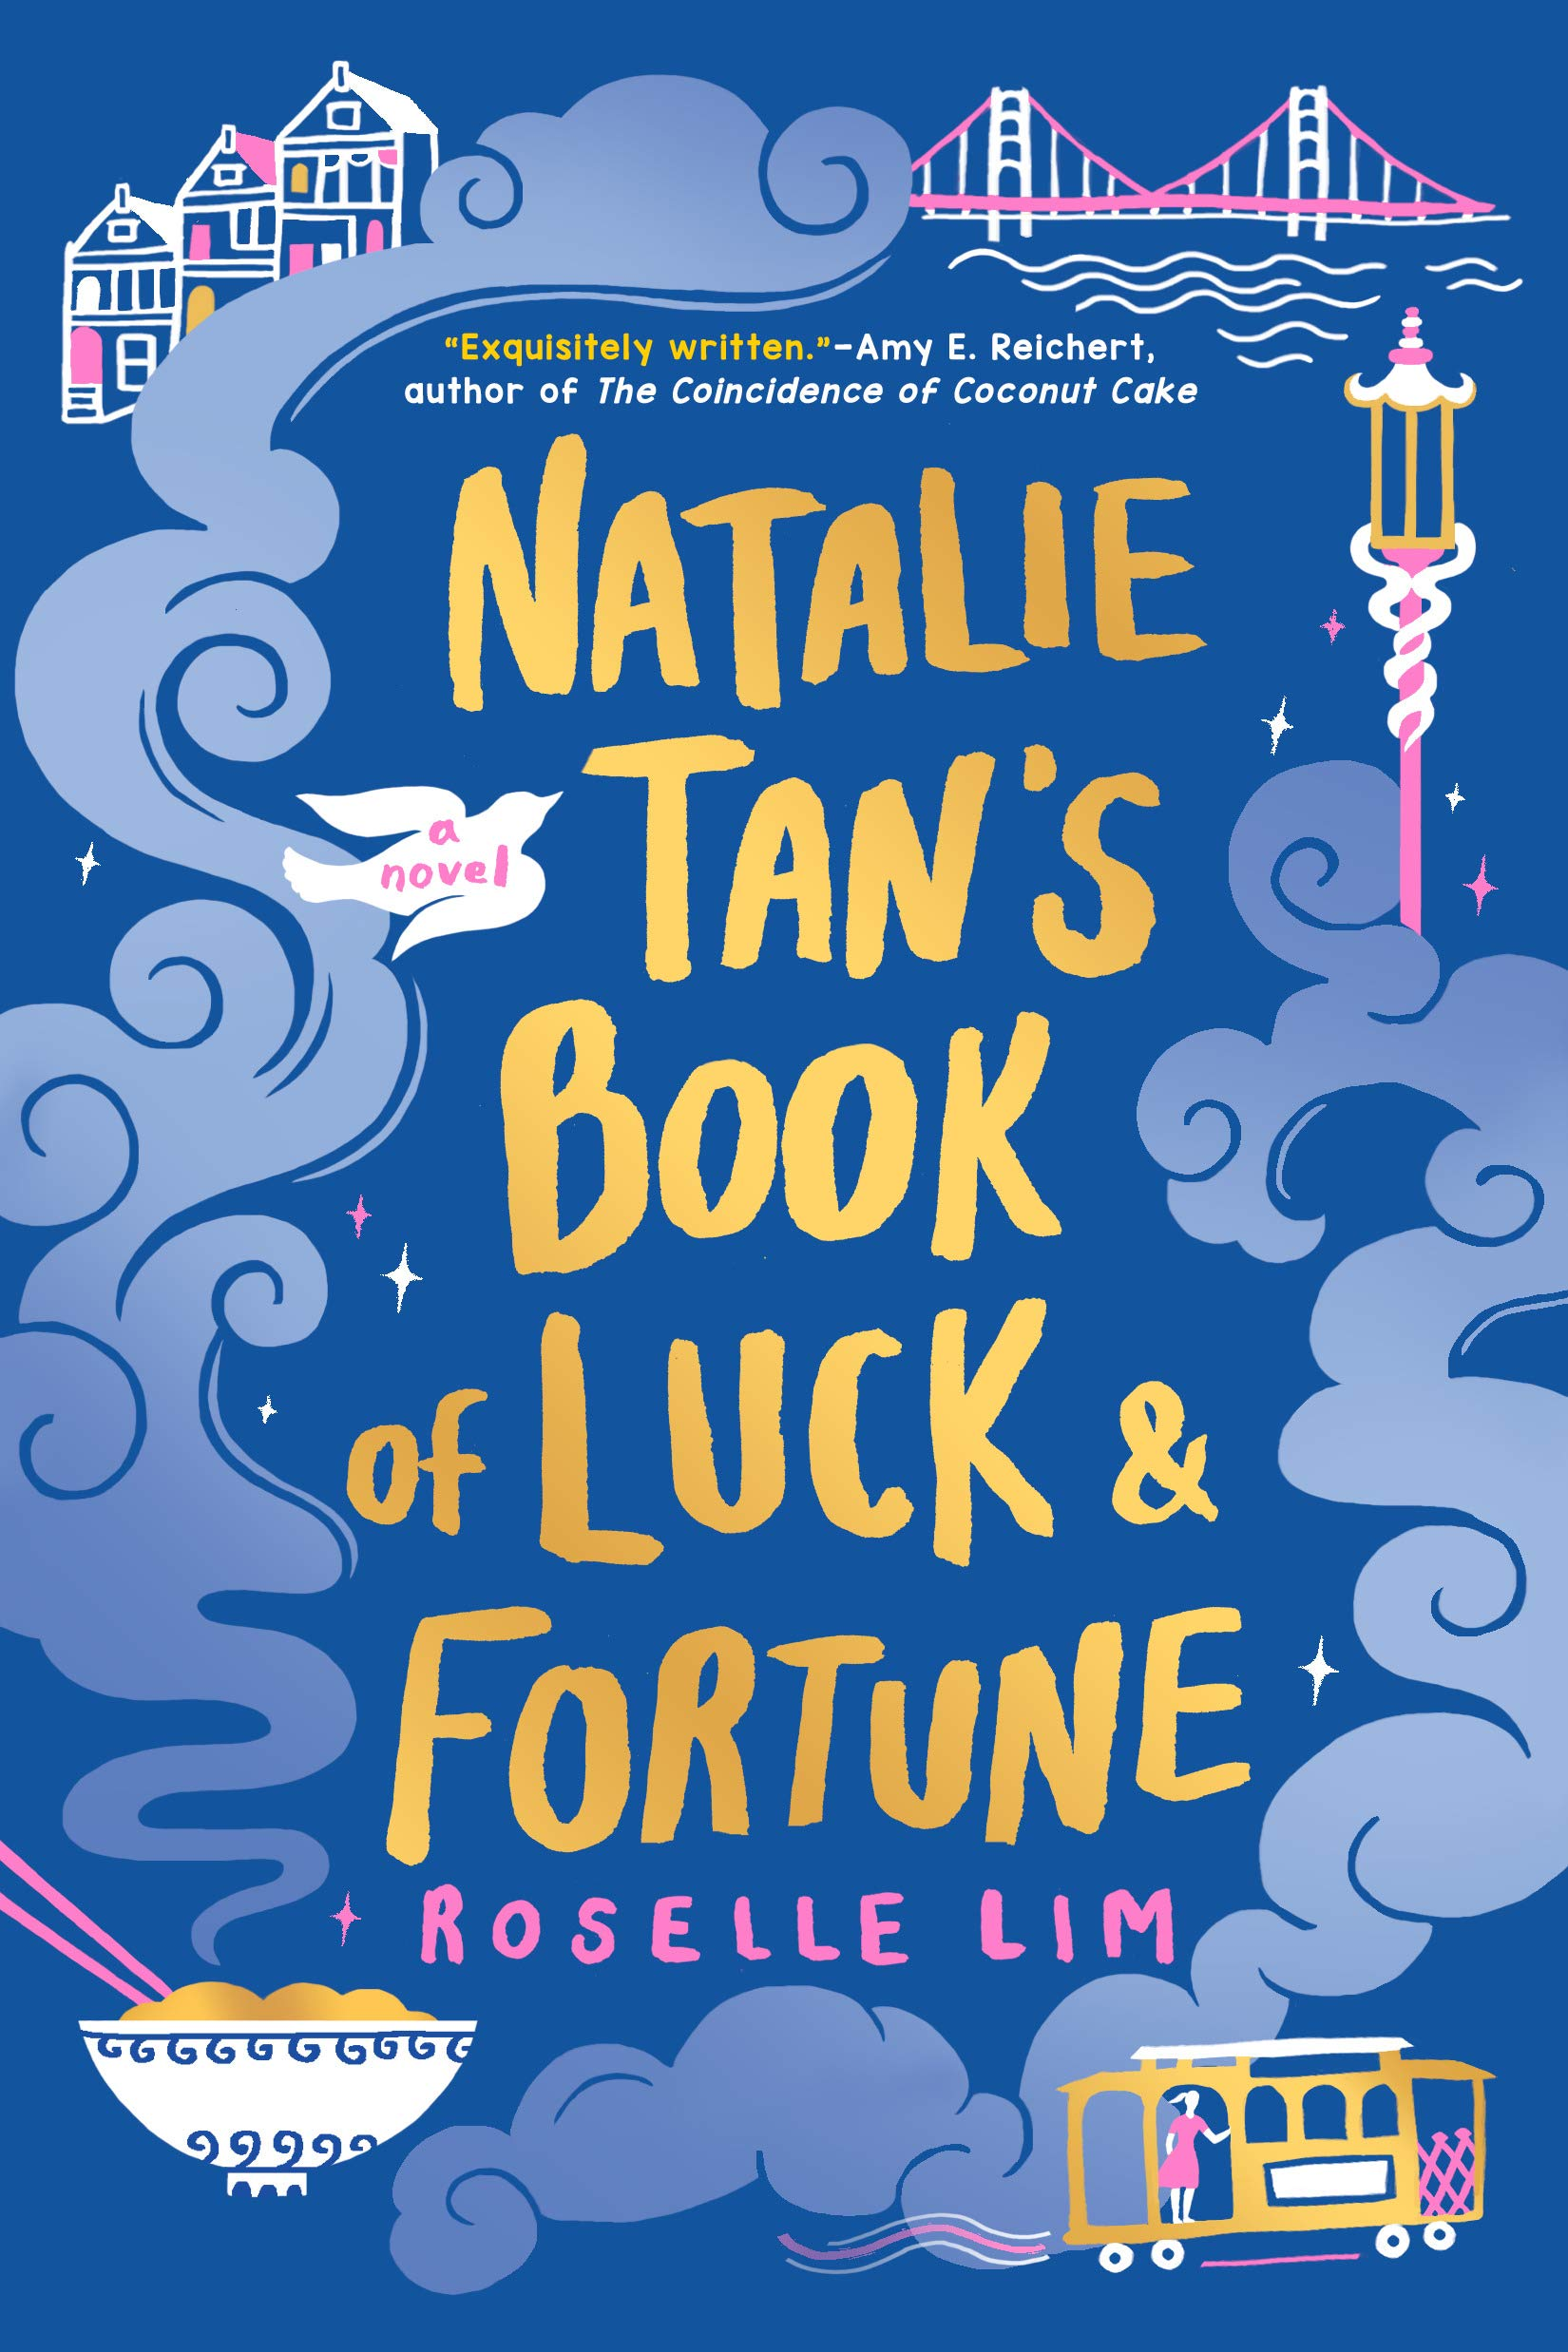 Author Interview - Roselle Lim